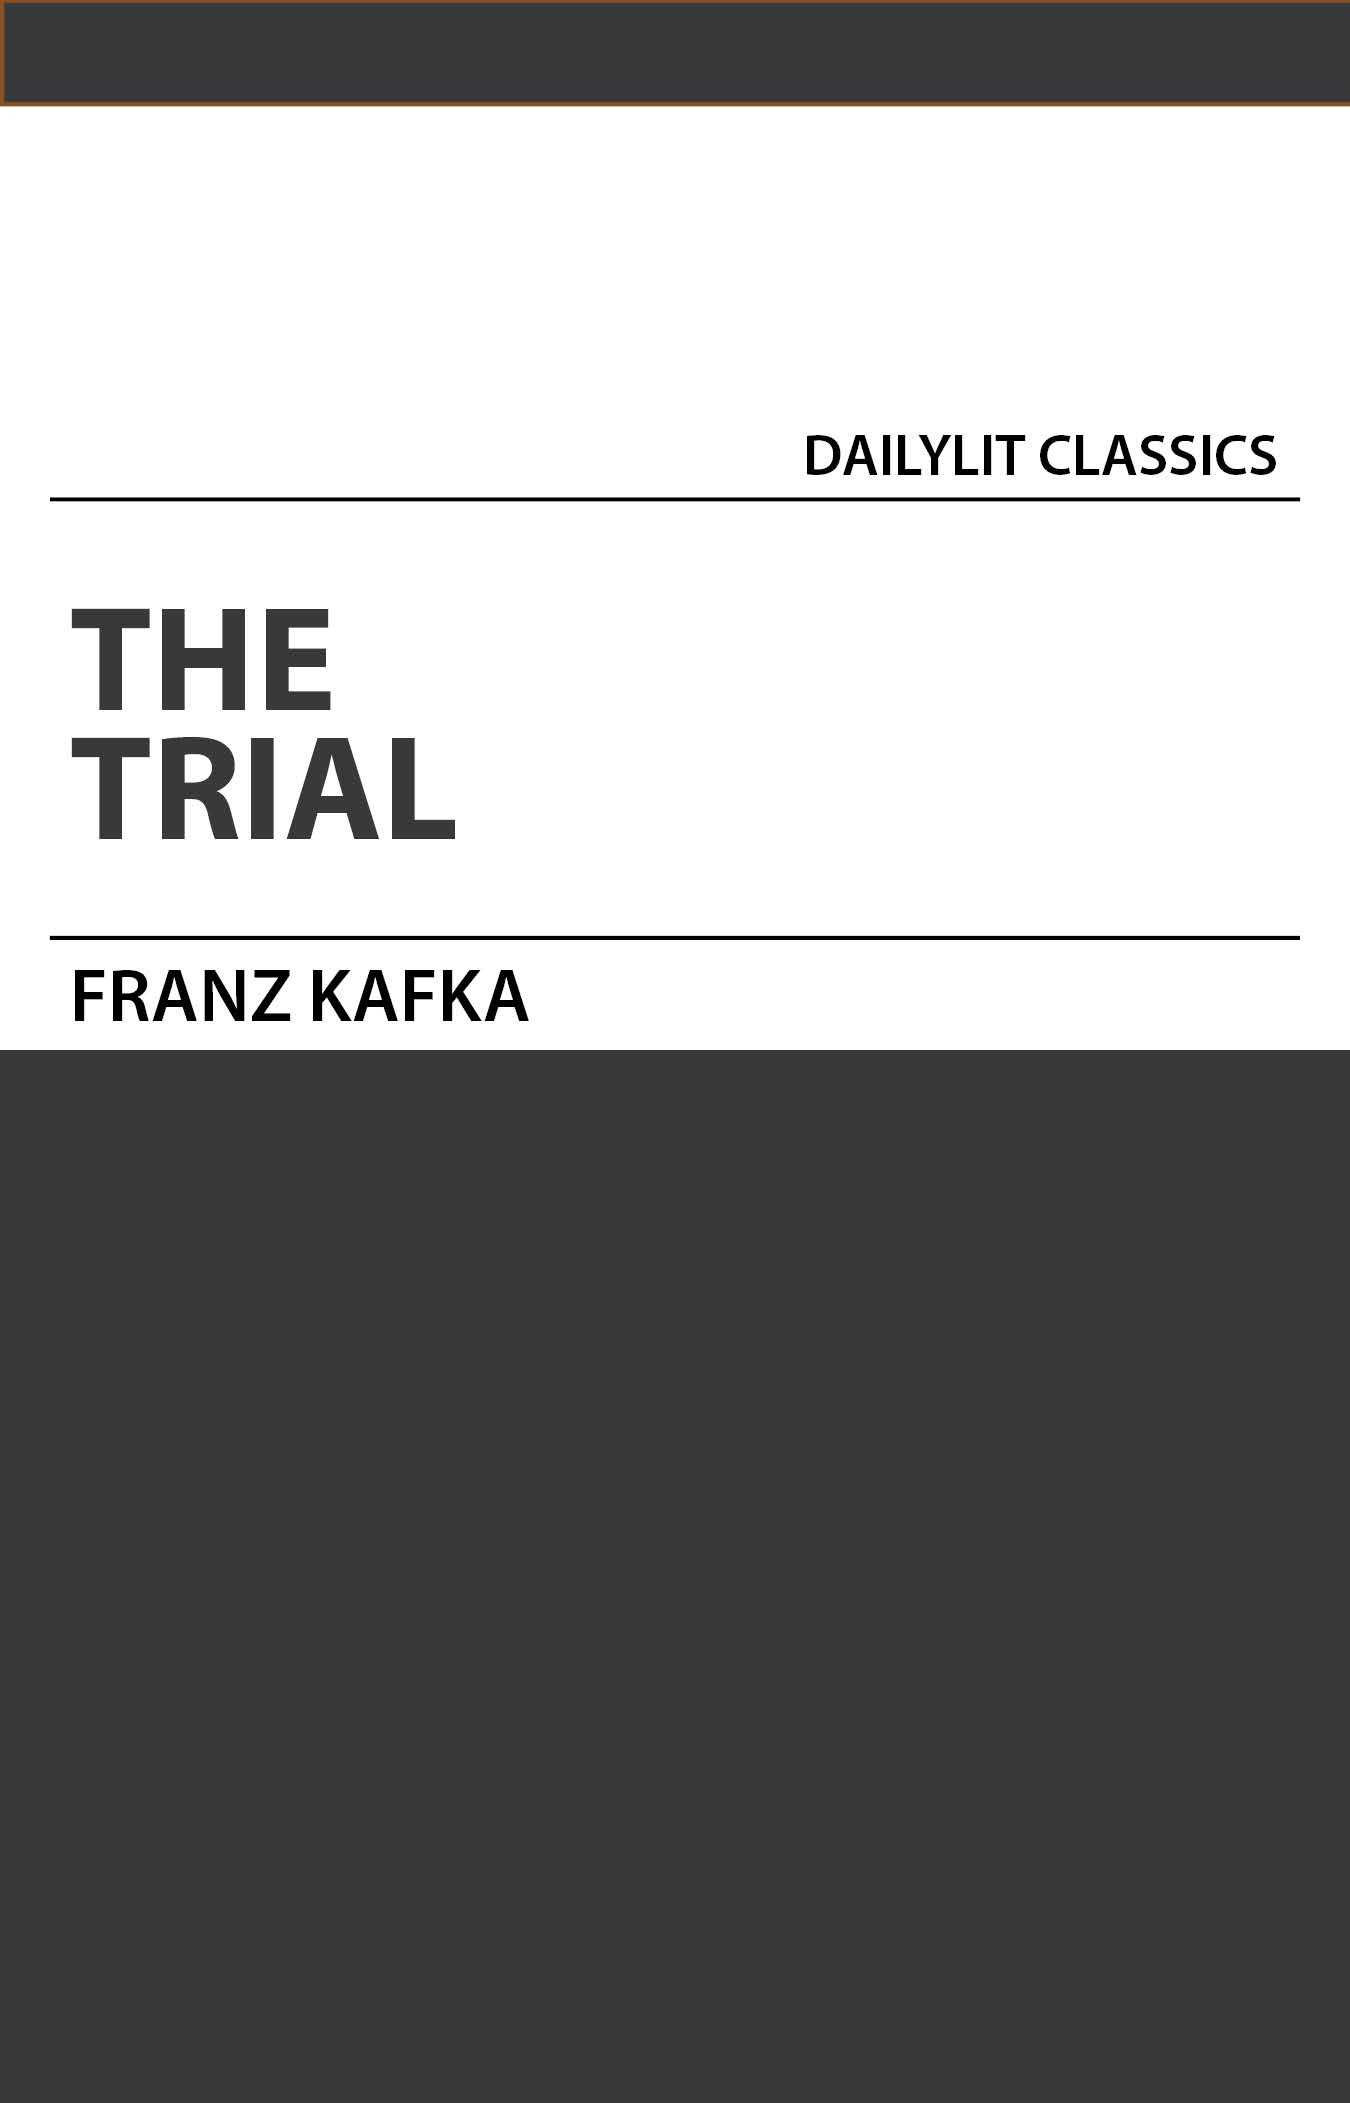 review of the trial by franz Franz kafka, author of the trial, on librarything.